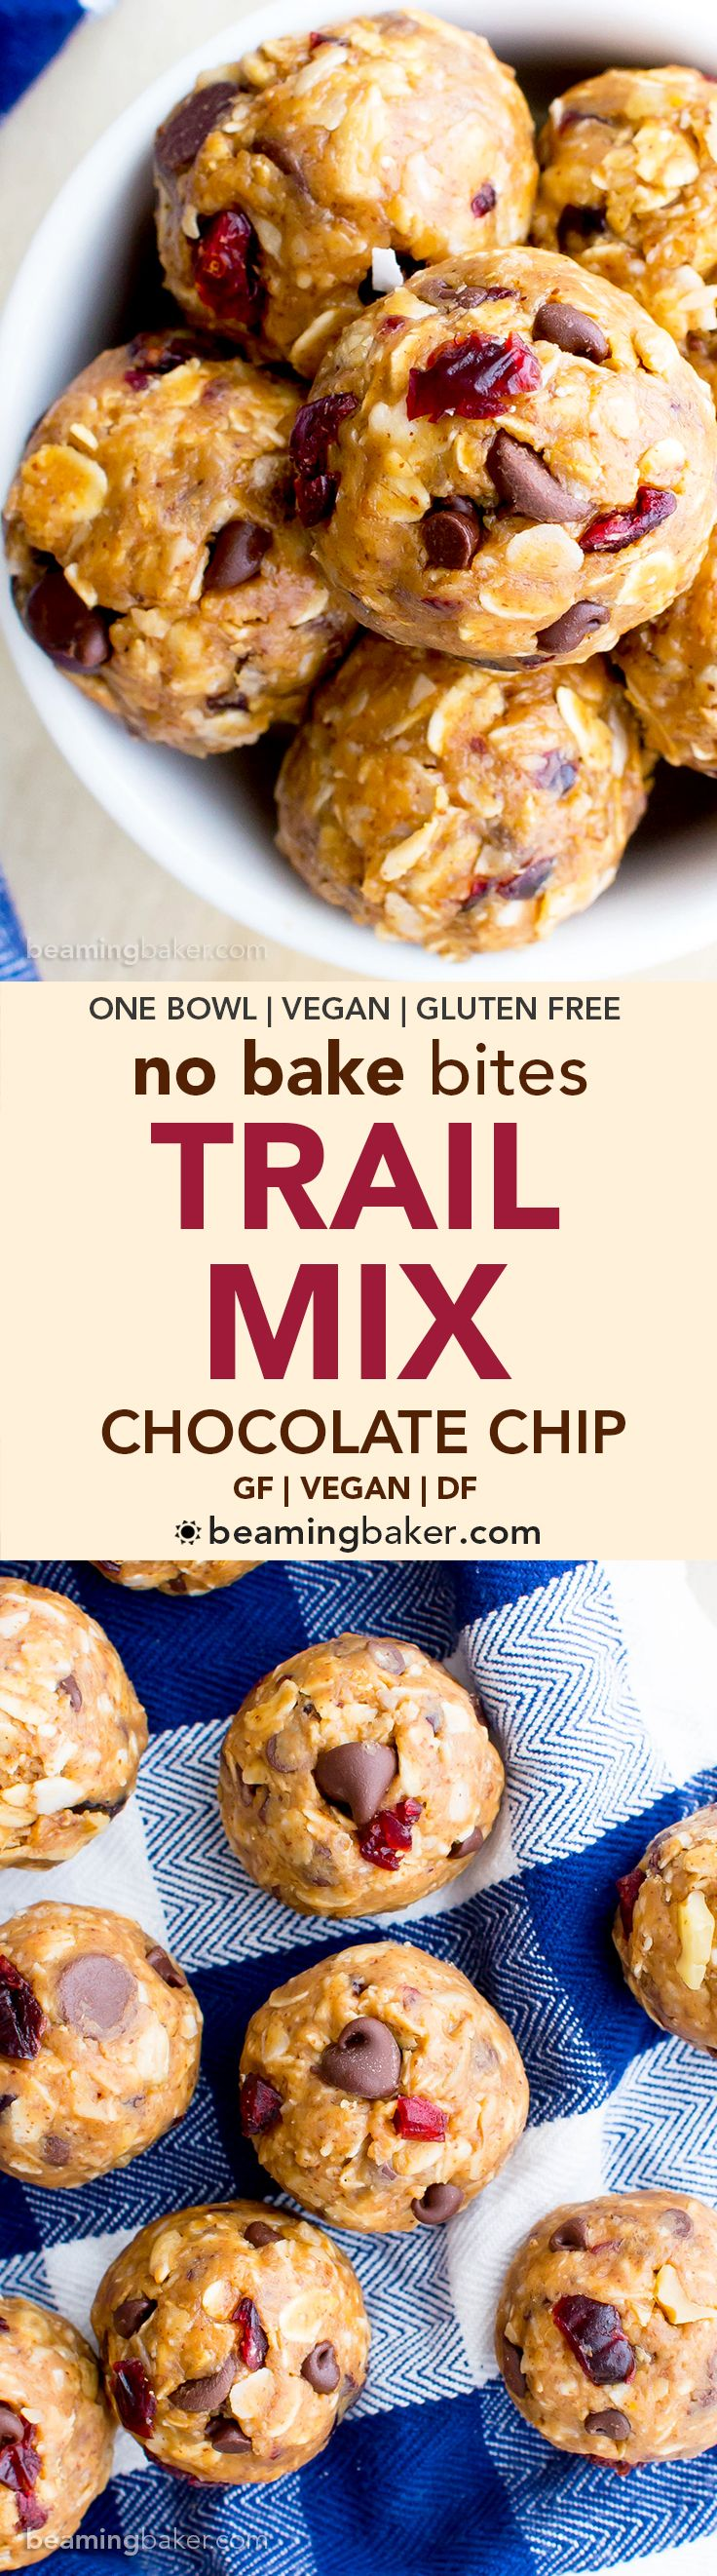 No Bake Chocolate Chip Trail Mix Energy Bites (V, GF, DF): a one bowl recipe for protein-packed energy bites bursting with whole ingredients. #Vegan #GlutenFree #DairyFree | BeamingBaker.com